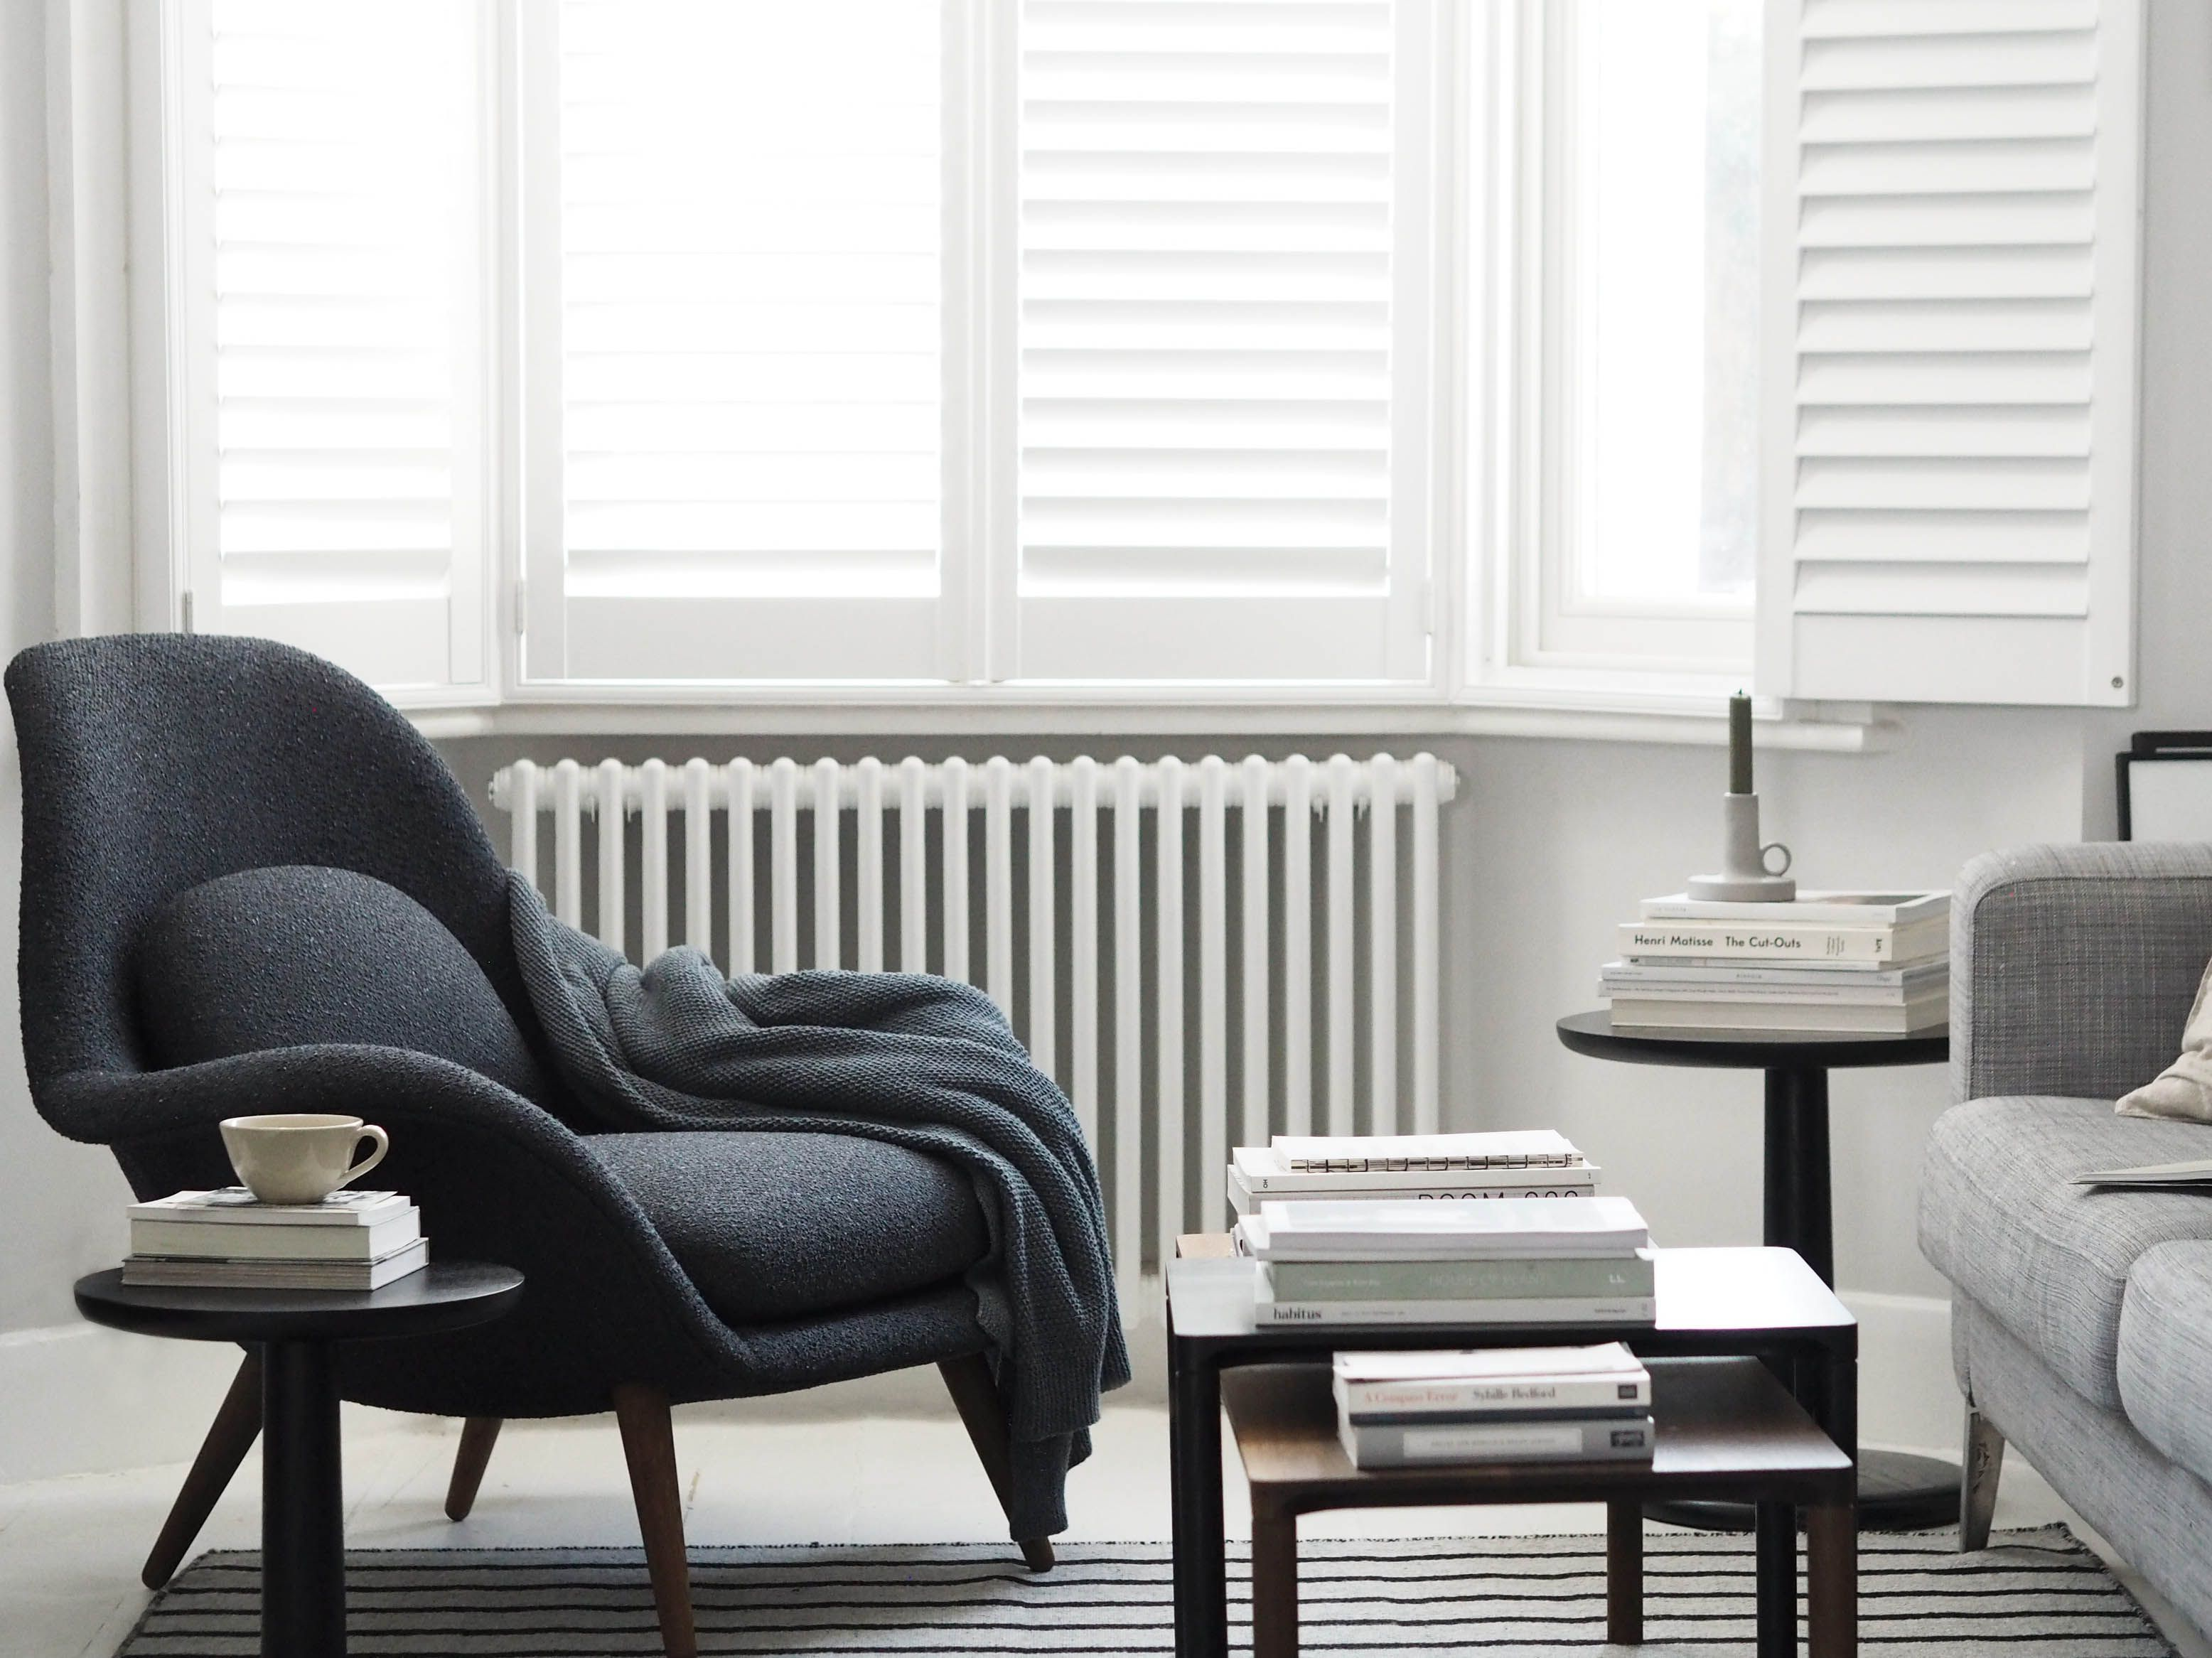 Fredericia furniture: The Modern Originals of tomorrow | Pinterest ...